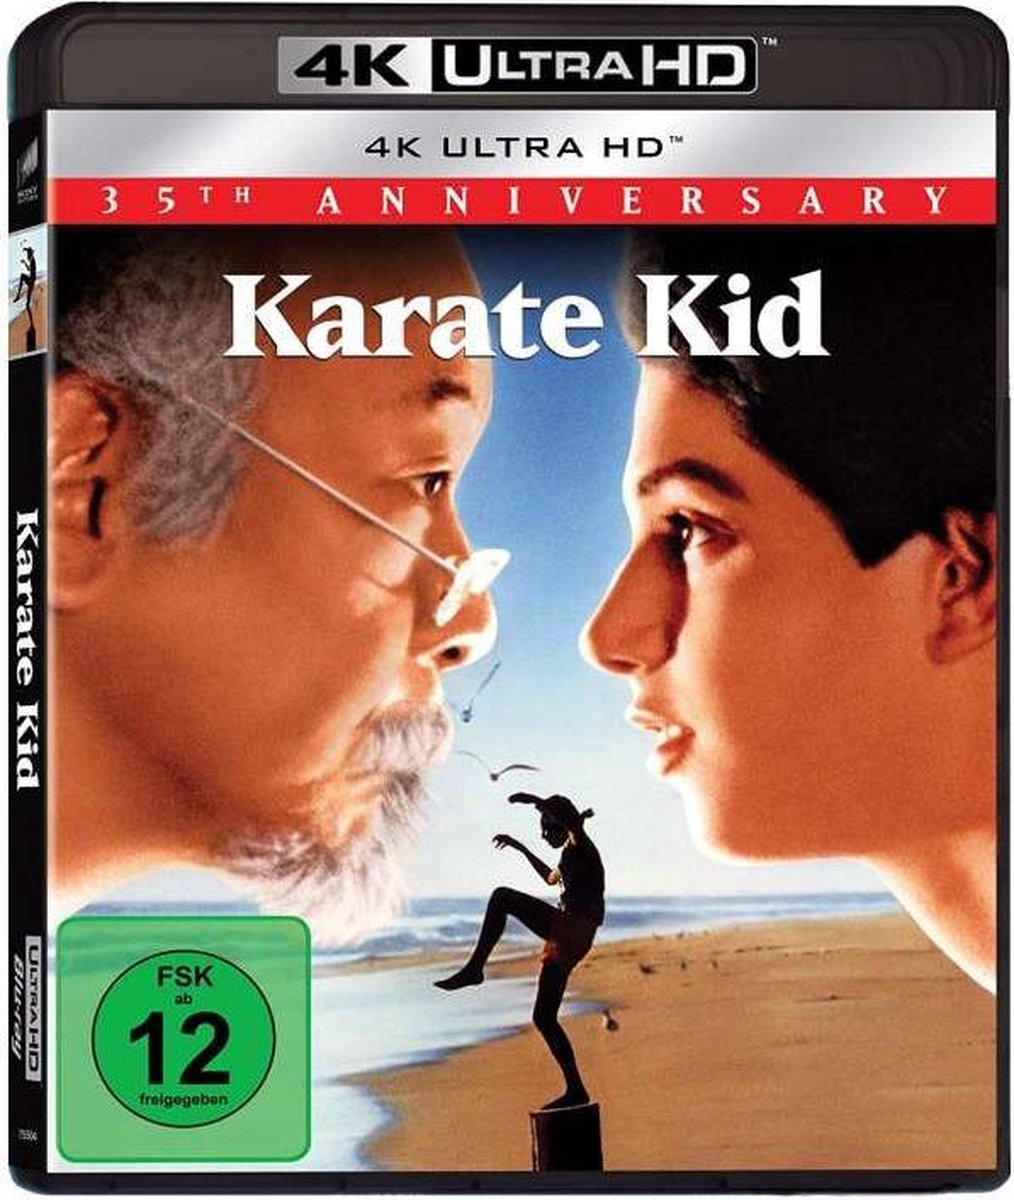 Karate Kid (1984) (Ultra HD Blu-ray)-